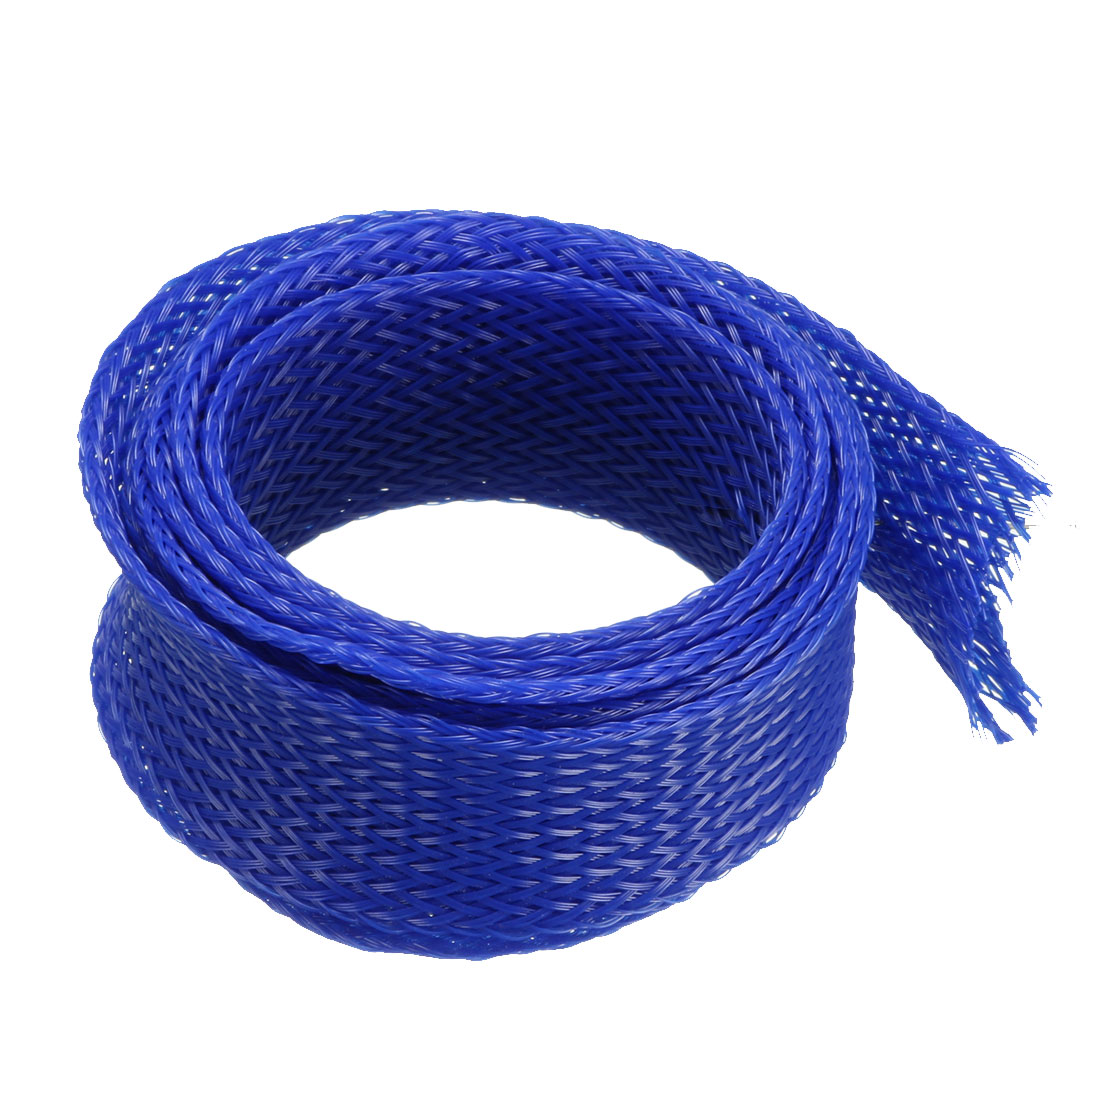 25mm Dia Tight Braided PET Expandable Sleeving Cable Wire Wrap Sheath Royalblue 1M